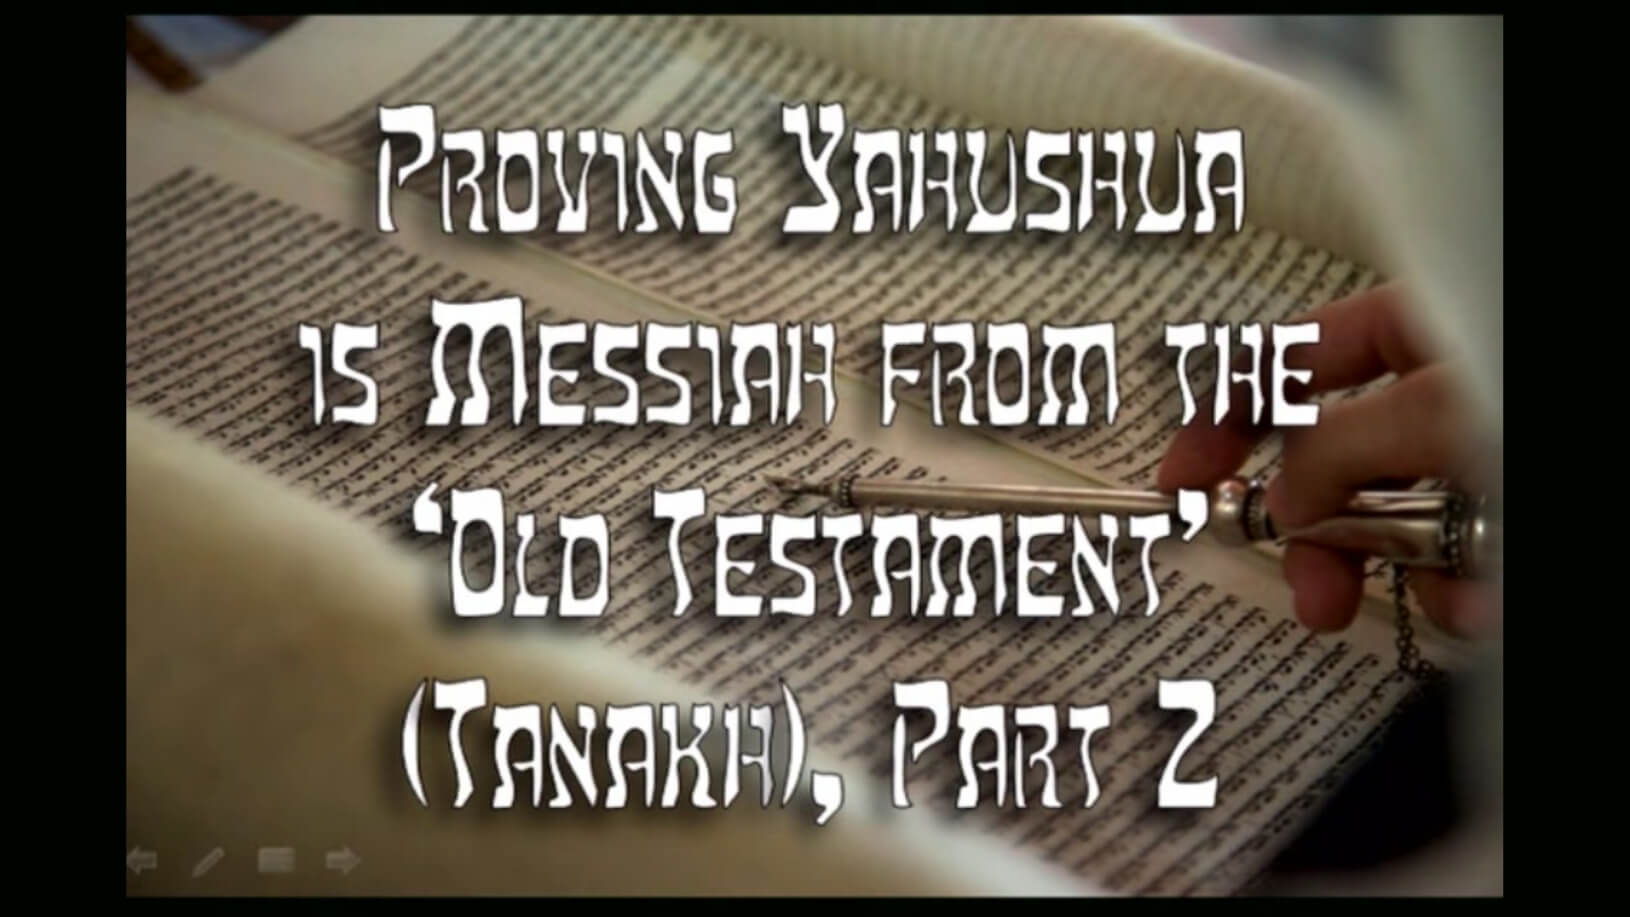 """Proving Yahushua is Messiah from the """"Old Testament"""" (Tanakh) – Part 2"""